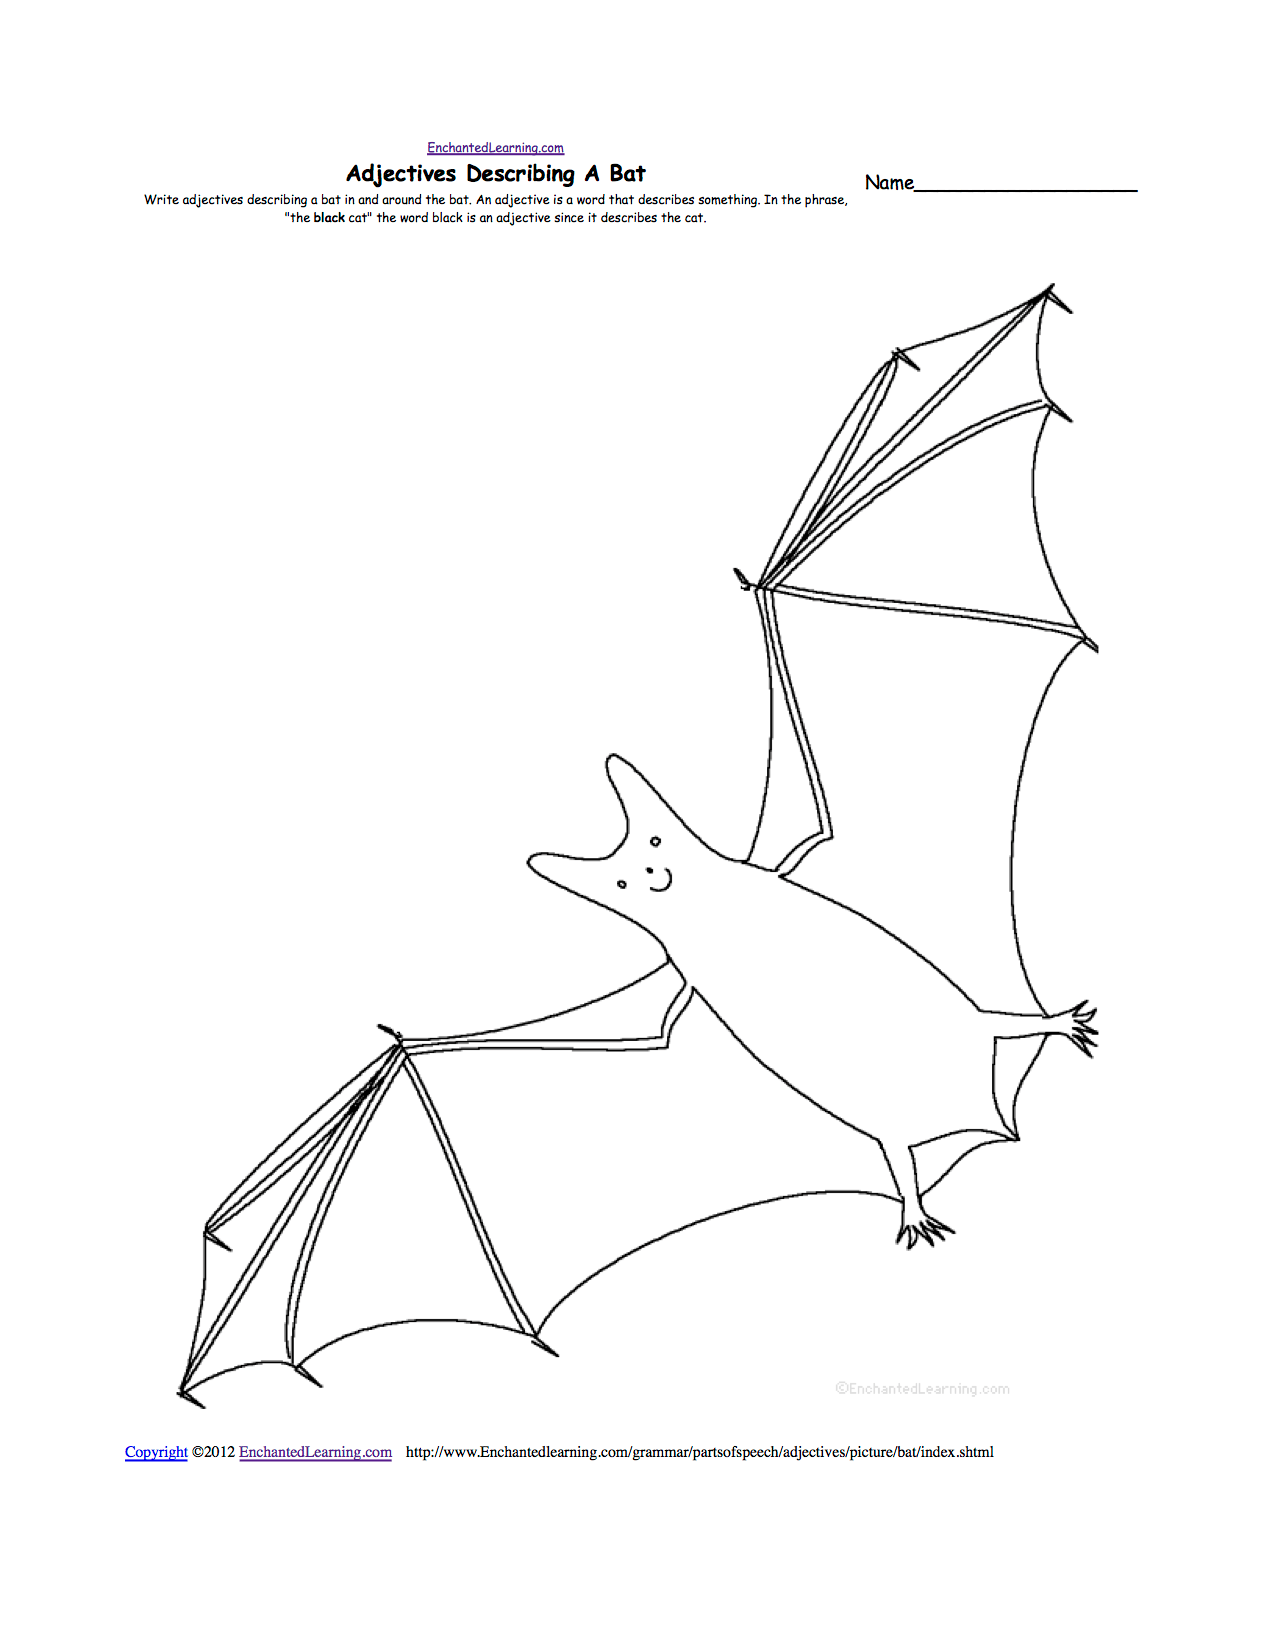 Bats At Enchantedlearning